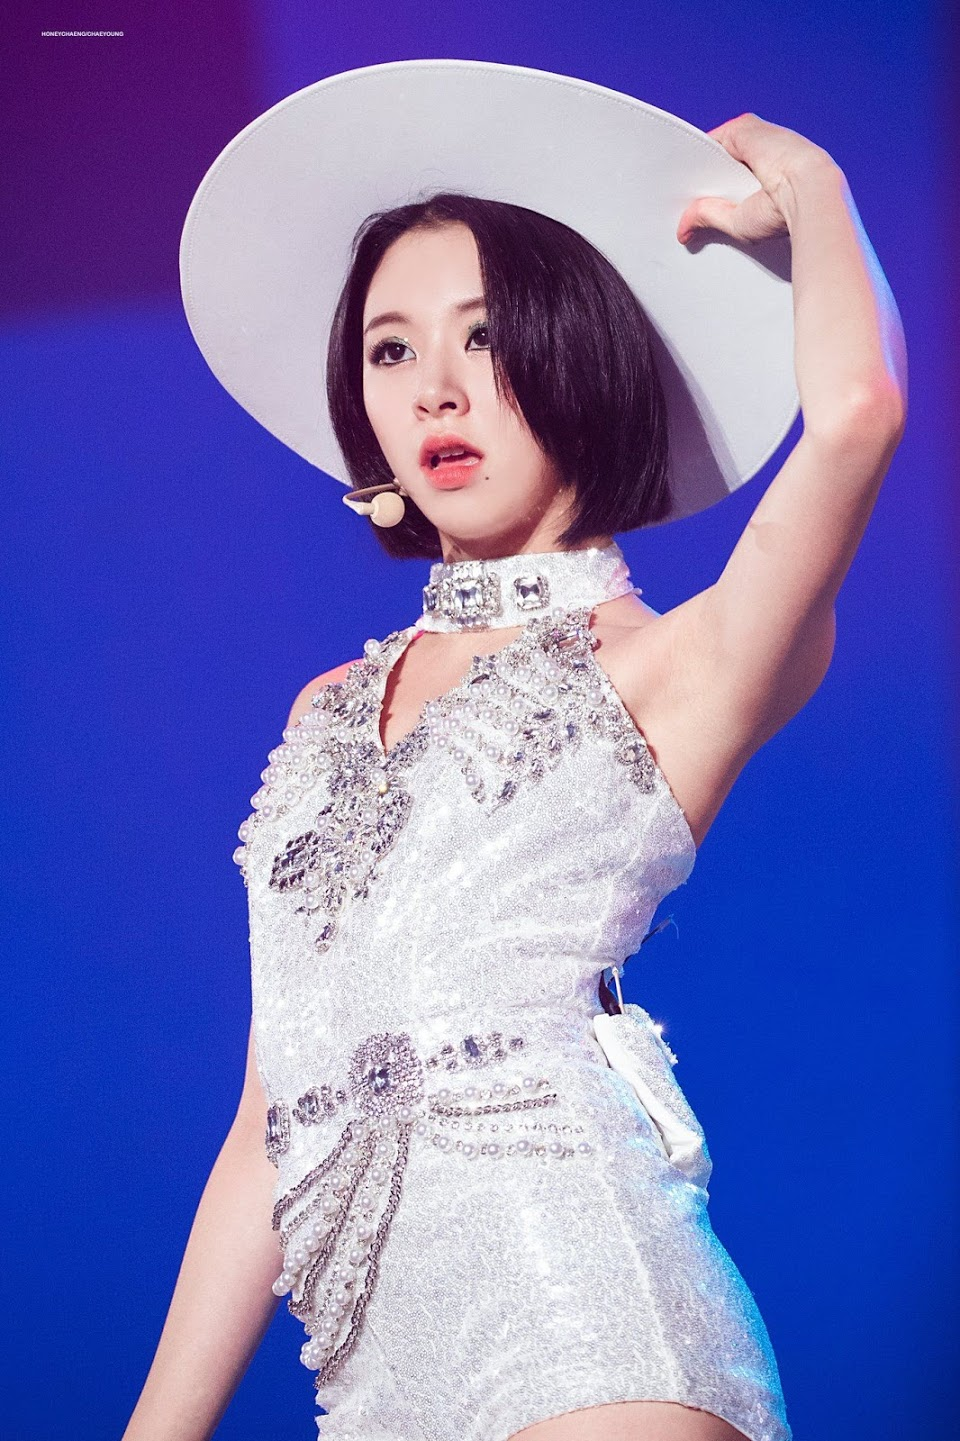 chaeyoung étape 21